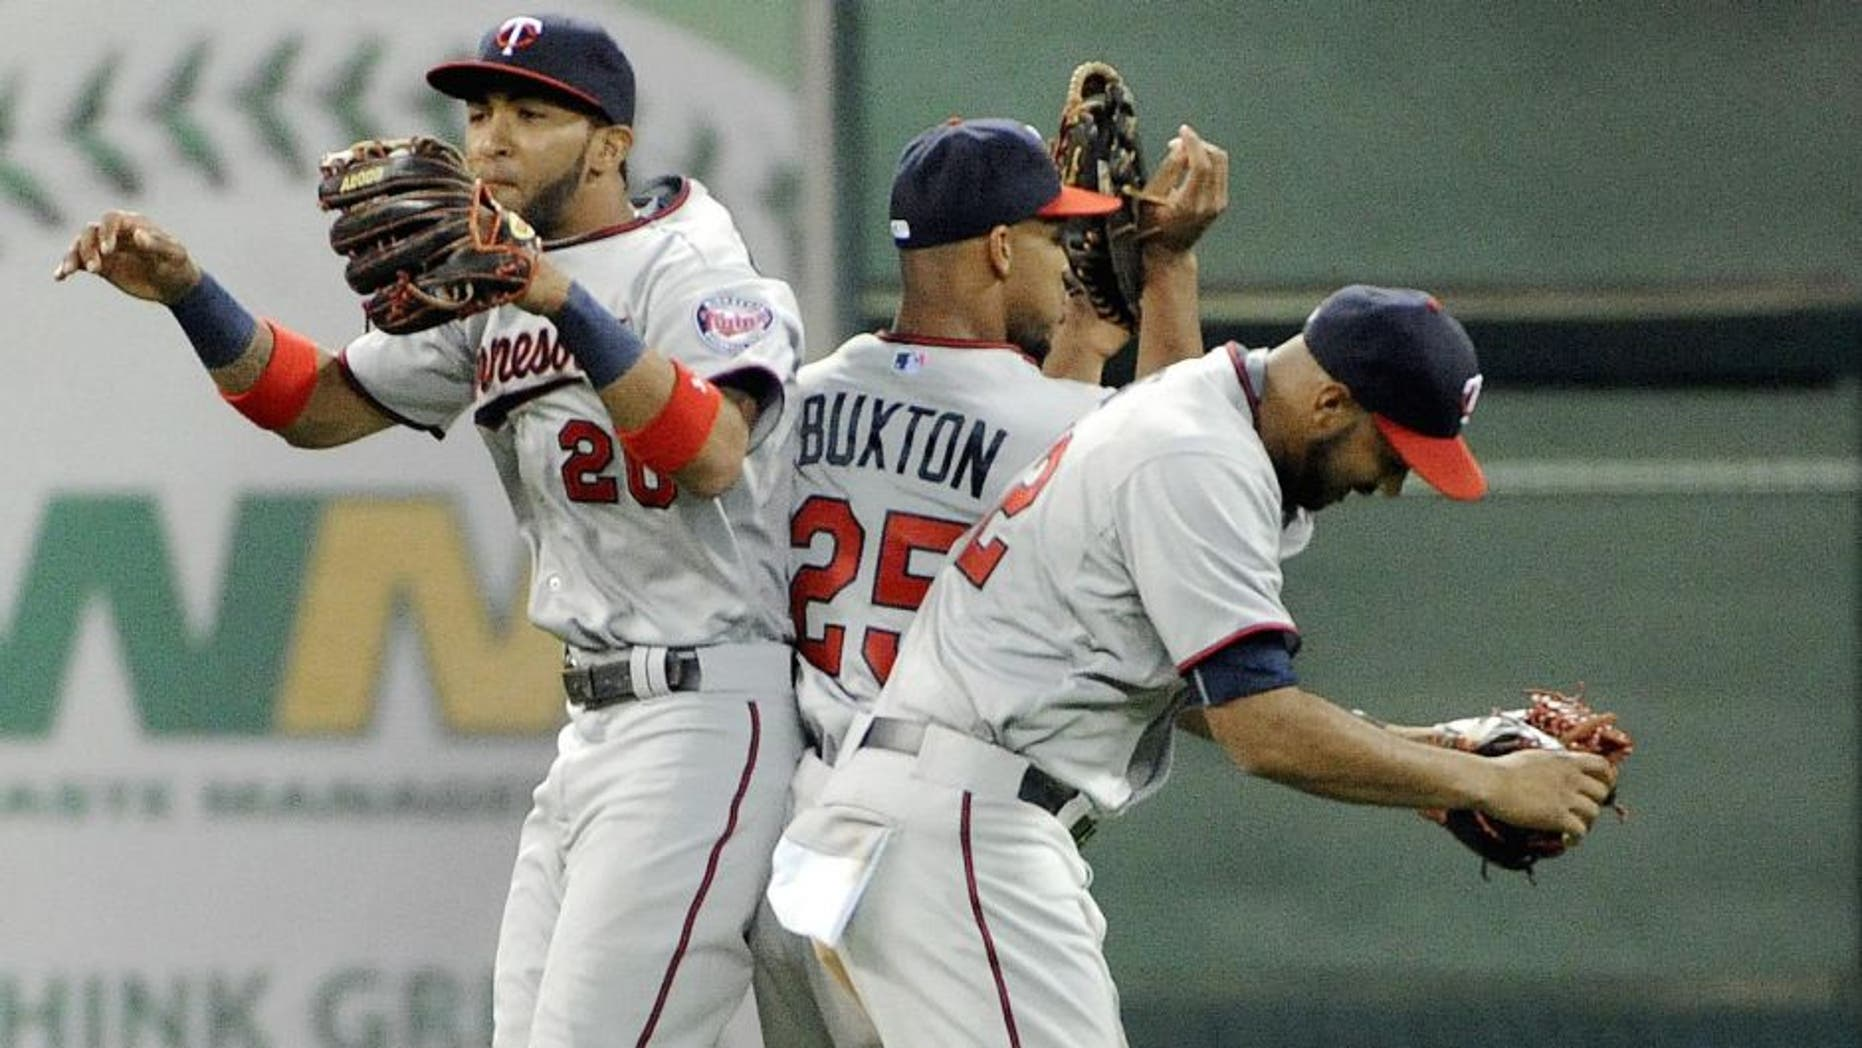 HOUSTON, TX - SEPTEMBER 5: (L TO R) Eddie Rosario, Byron Buxton, and Miguel Sano celebrate the Minnesota Twins' 3-2 victory over the Houston Astros at Minute Maid Park on September 5, 2015 in Houston, Texas. (Photo by Eric Christian Smith/Getty Images)